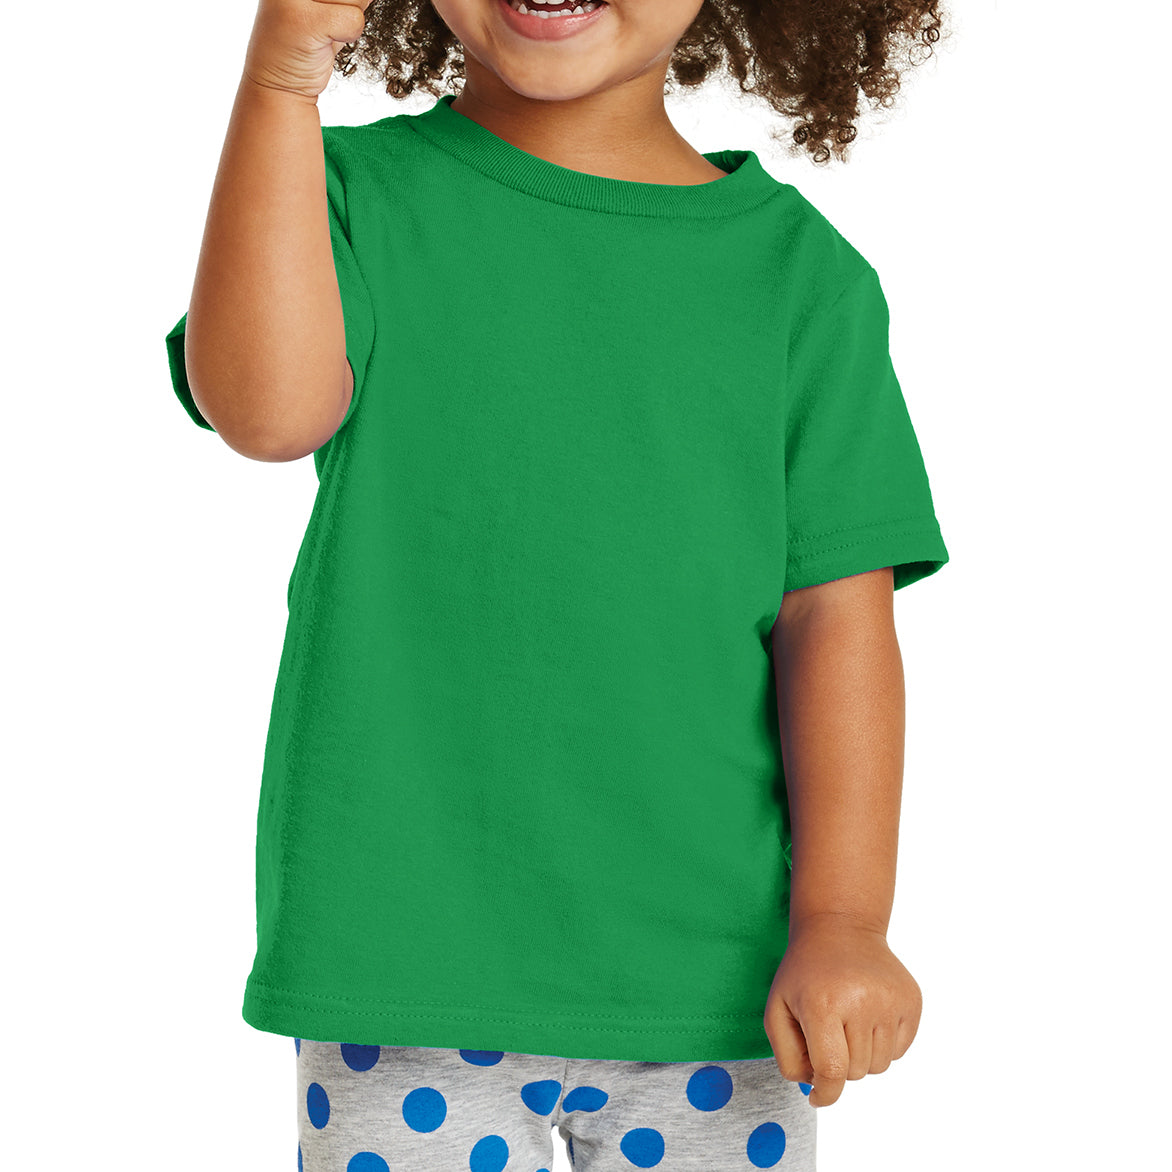 Toddler Core Cotton Tee - Clover Green